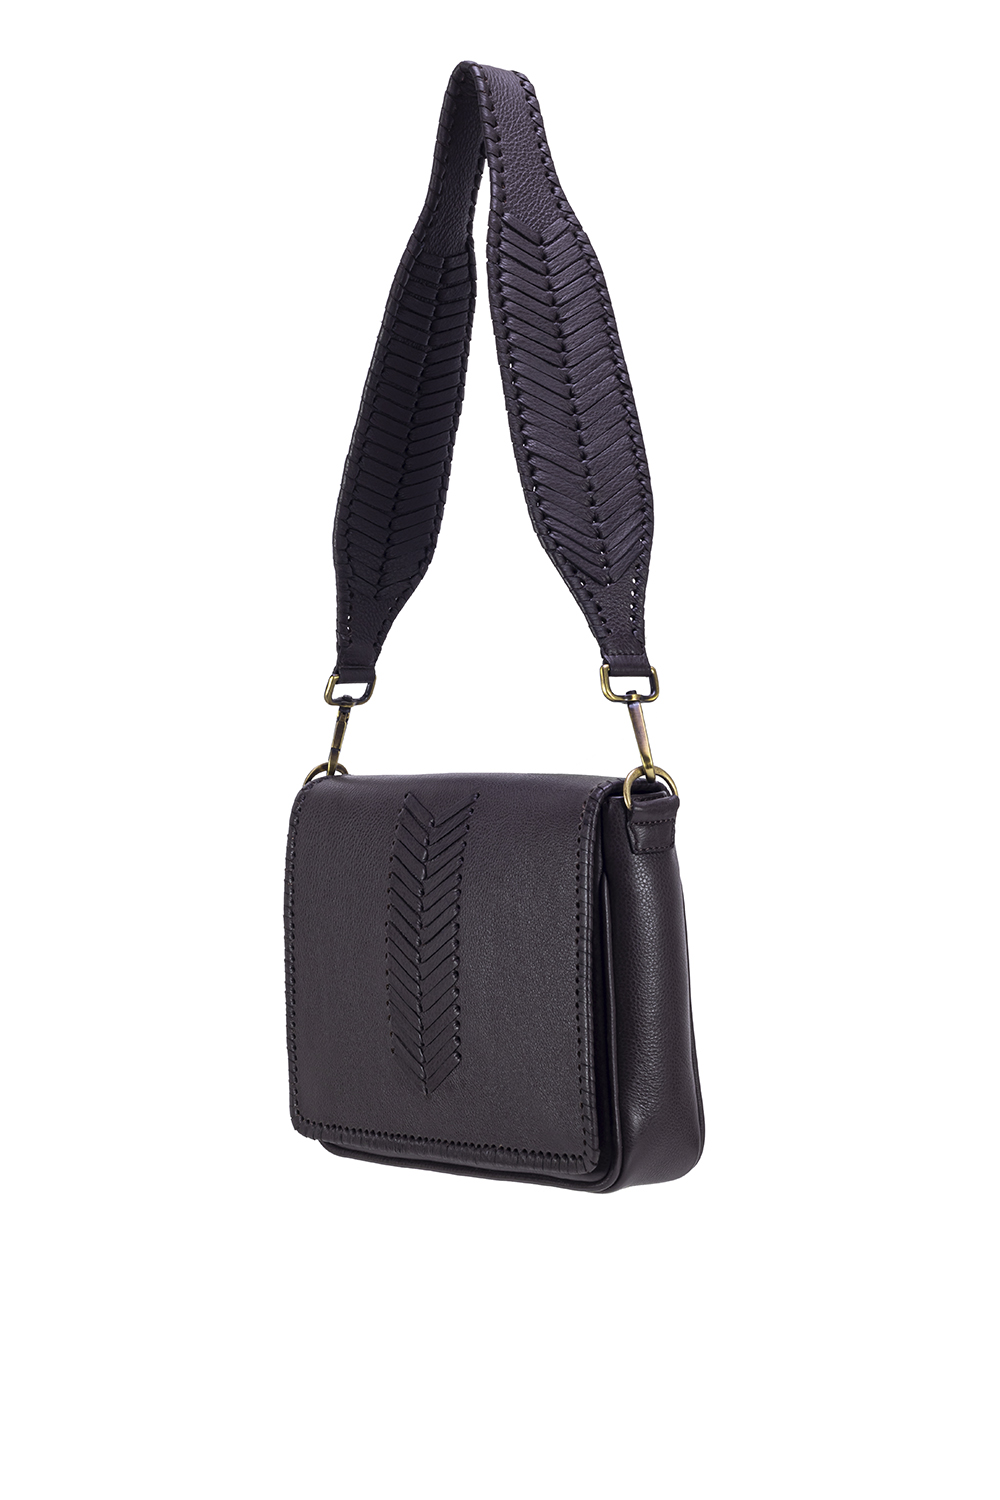 The Molly Bag is handmade in Portugal out of textured calf leather.